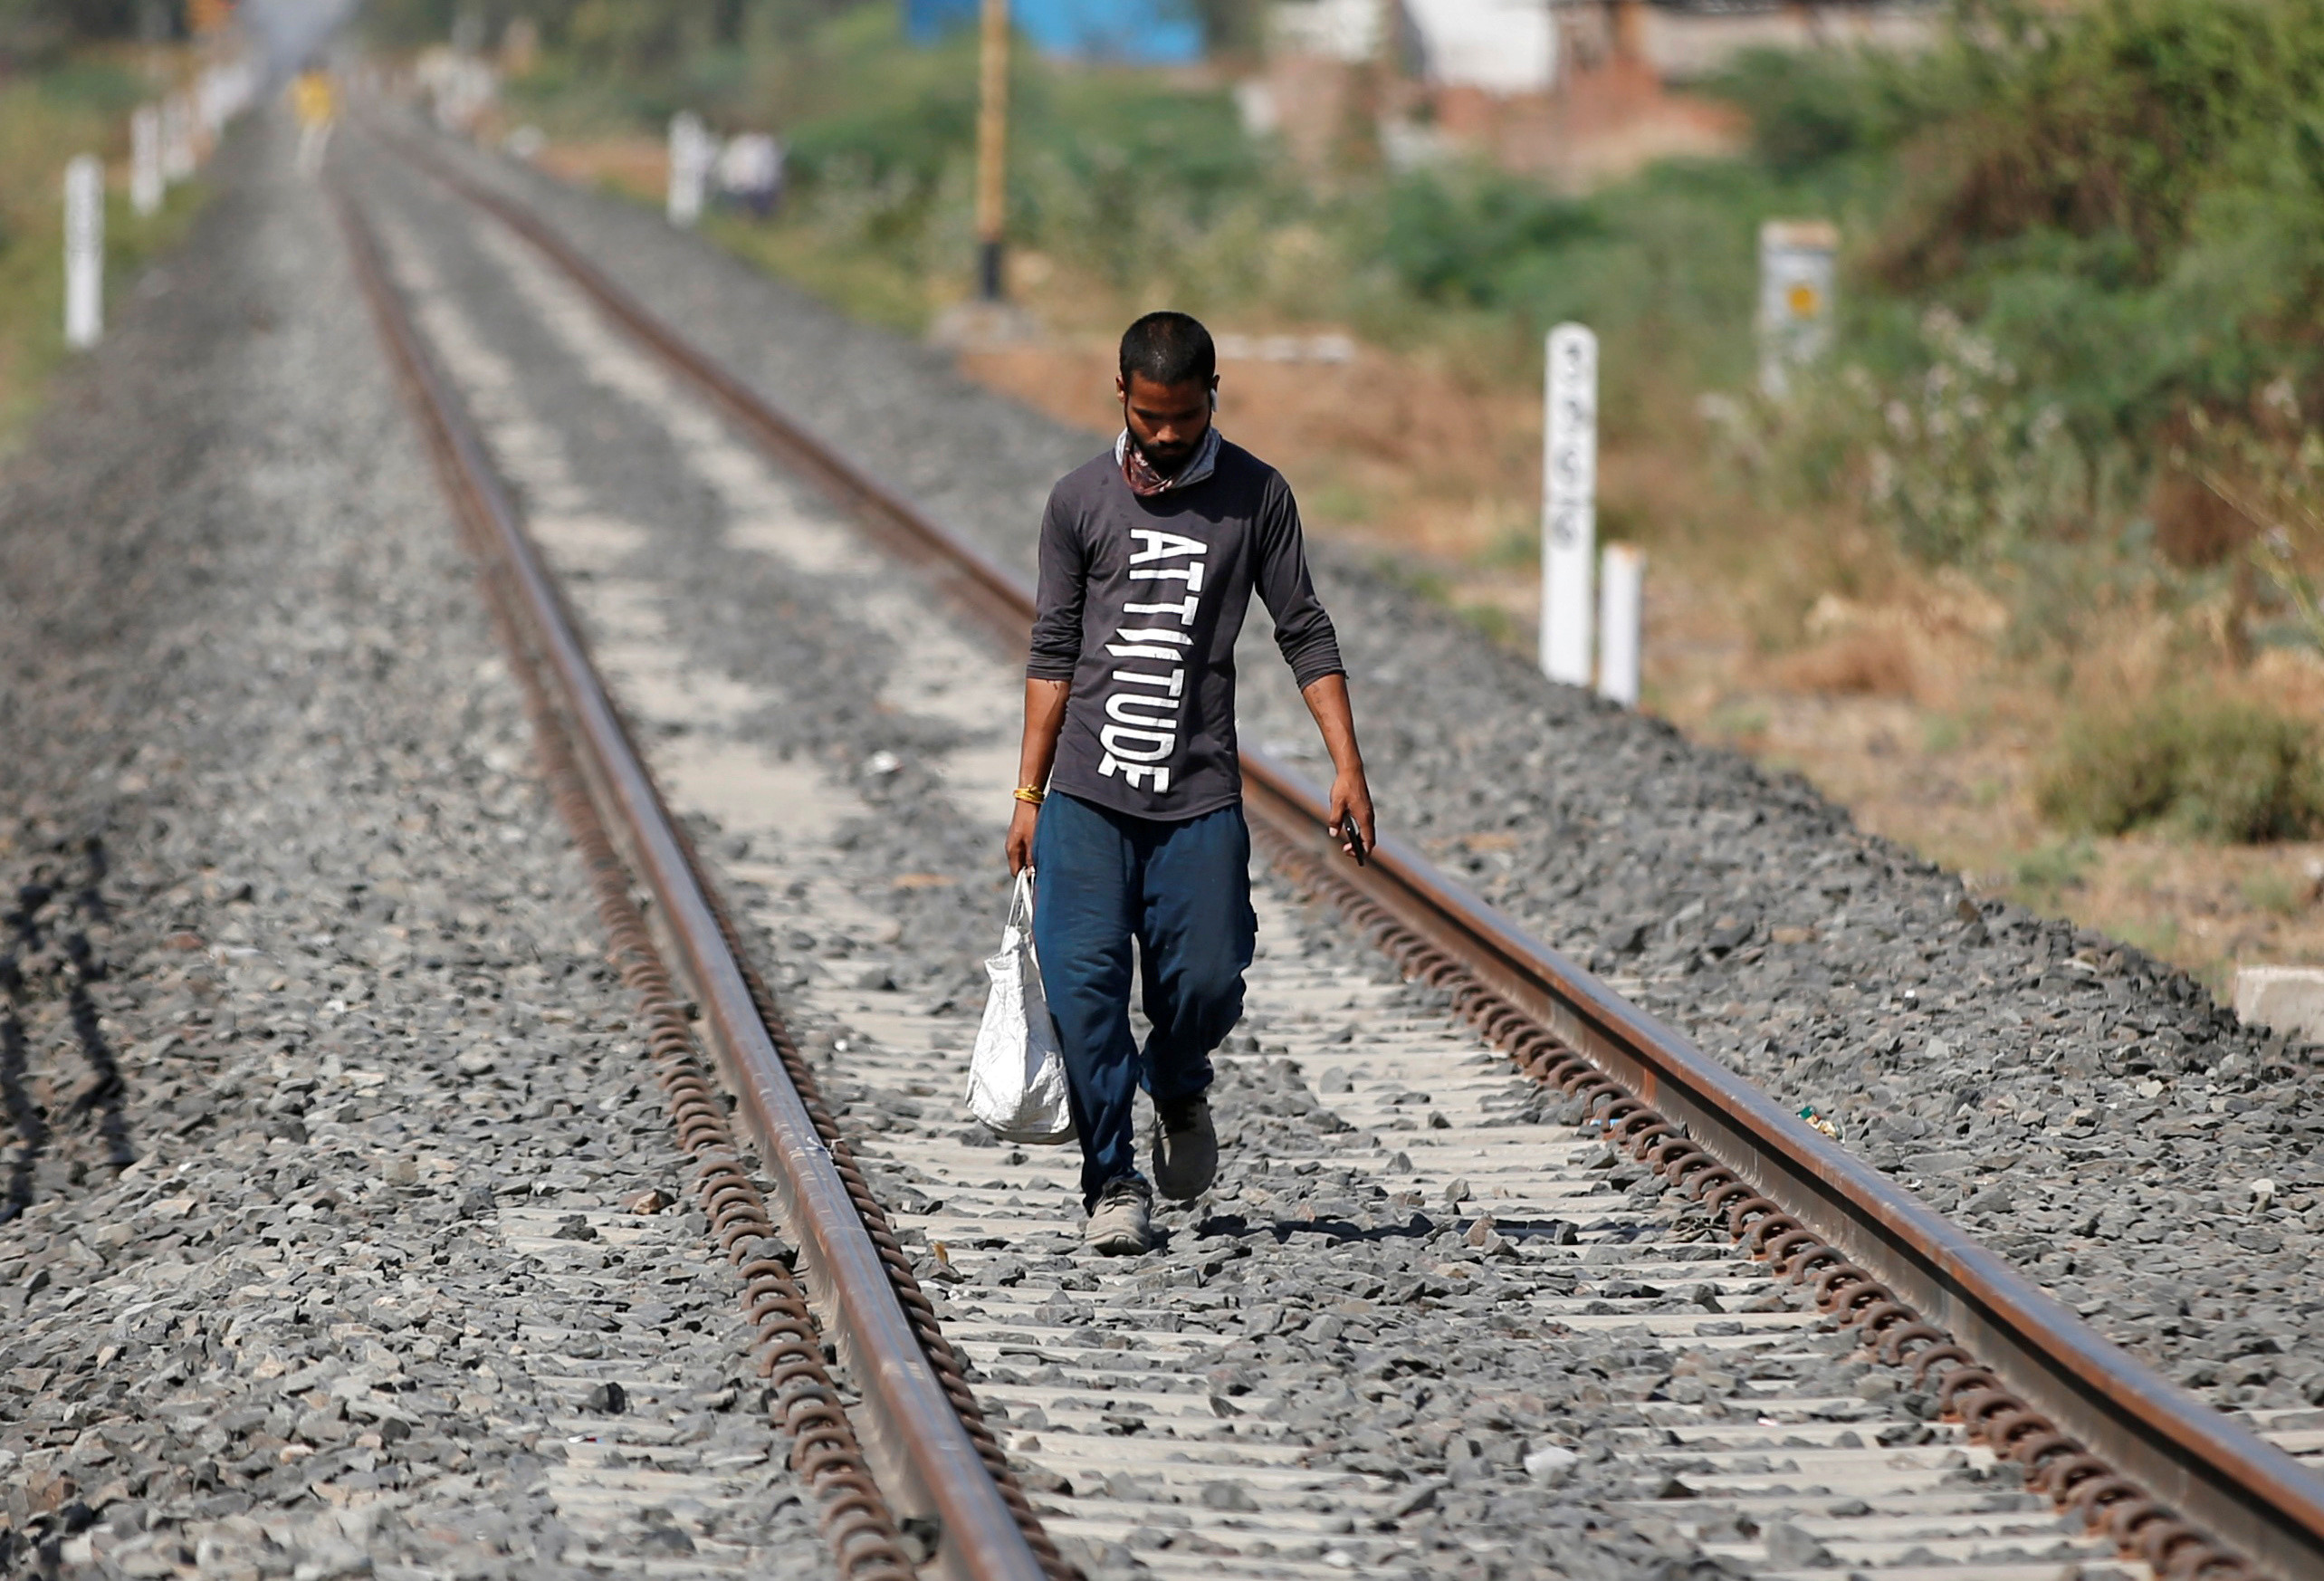 A migrant worker walks along a railway track to return to his home state of central Madhya Pradesh, during an extended nationwide lockdown to slow the spreading of the coronavirus disease (COVID-19), in Ahmedabad, India, May 19, 2020